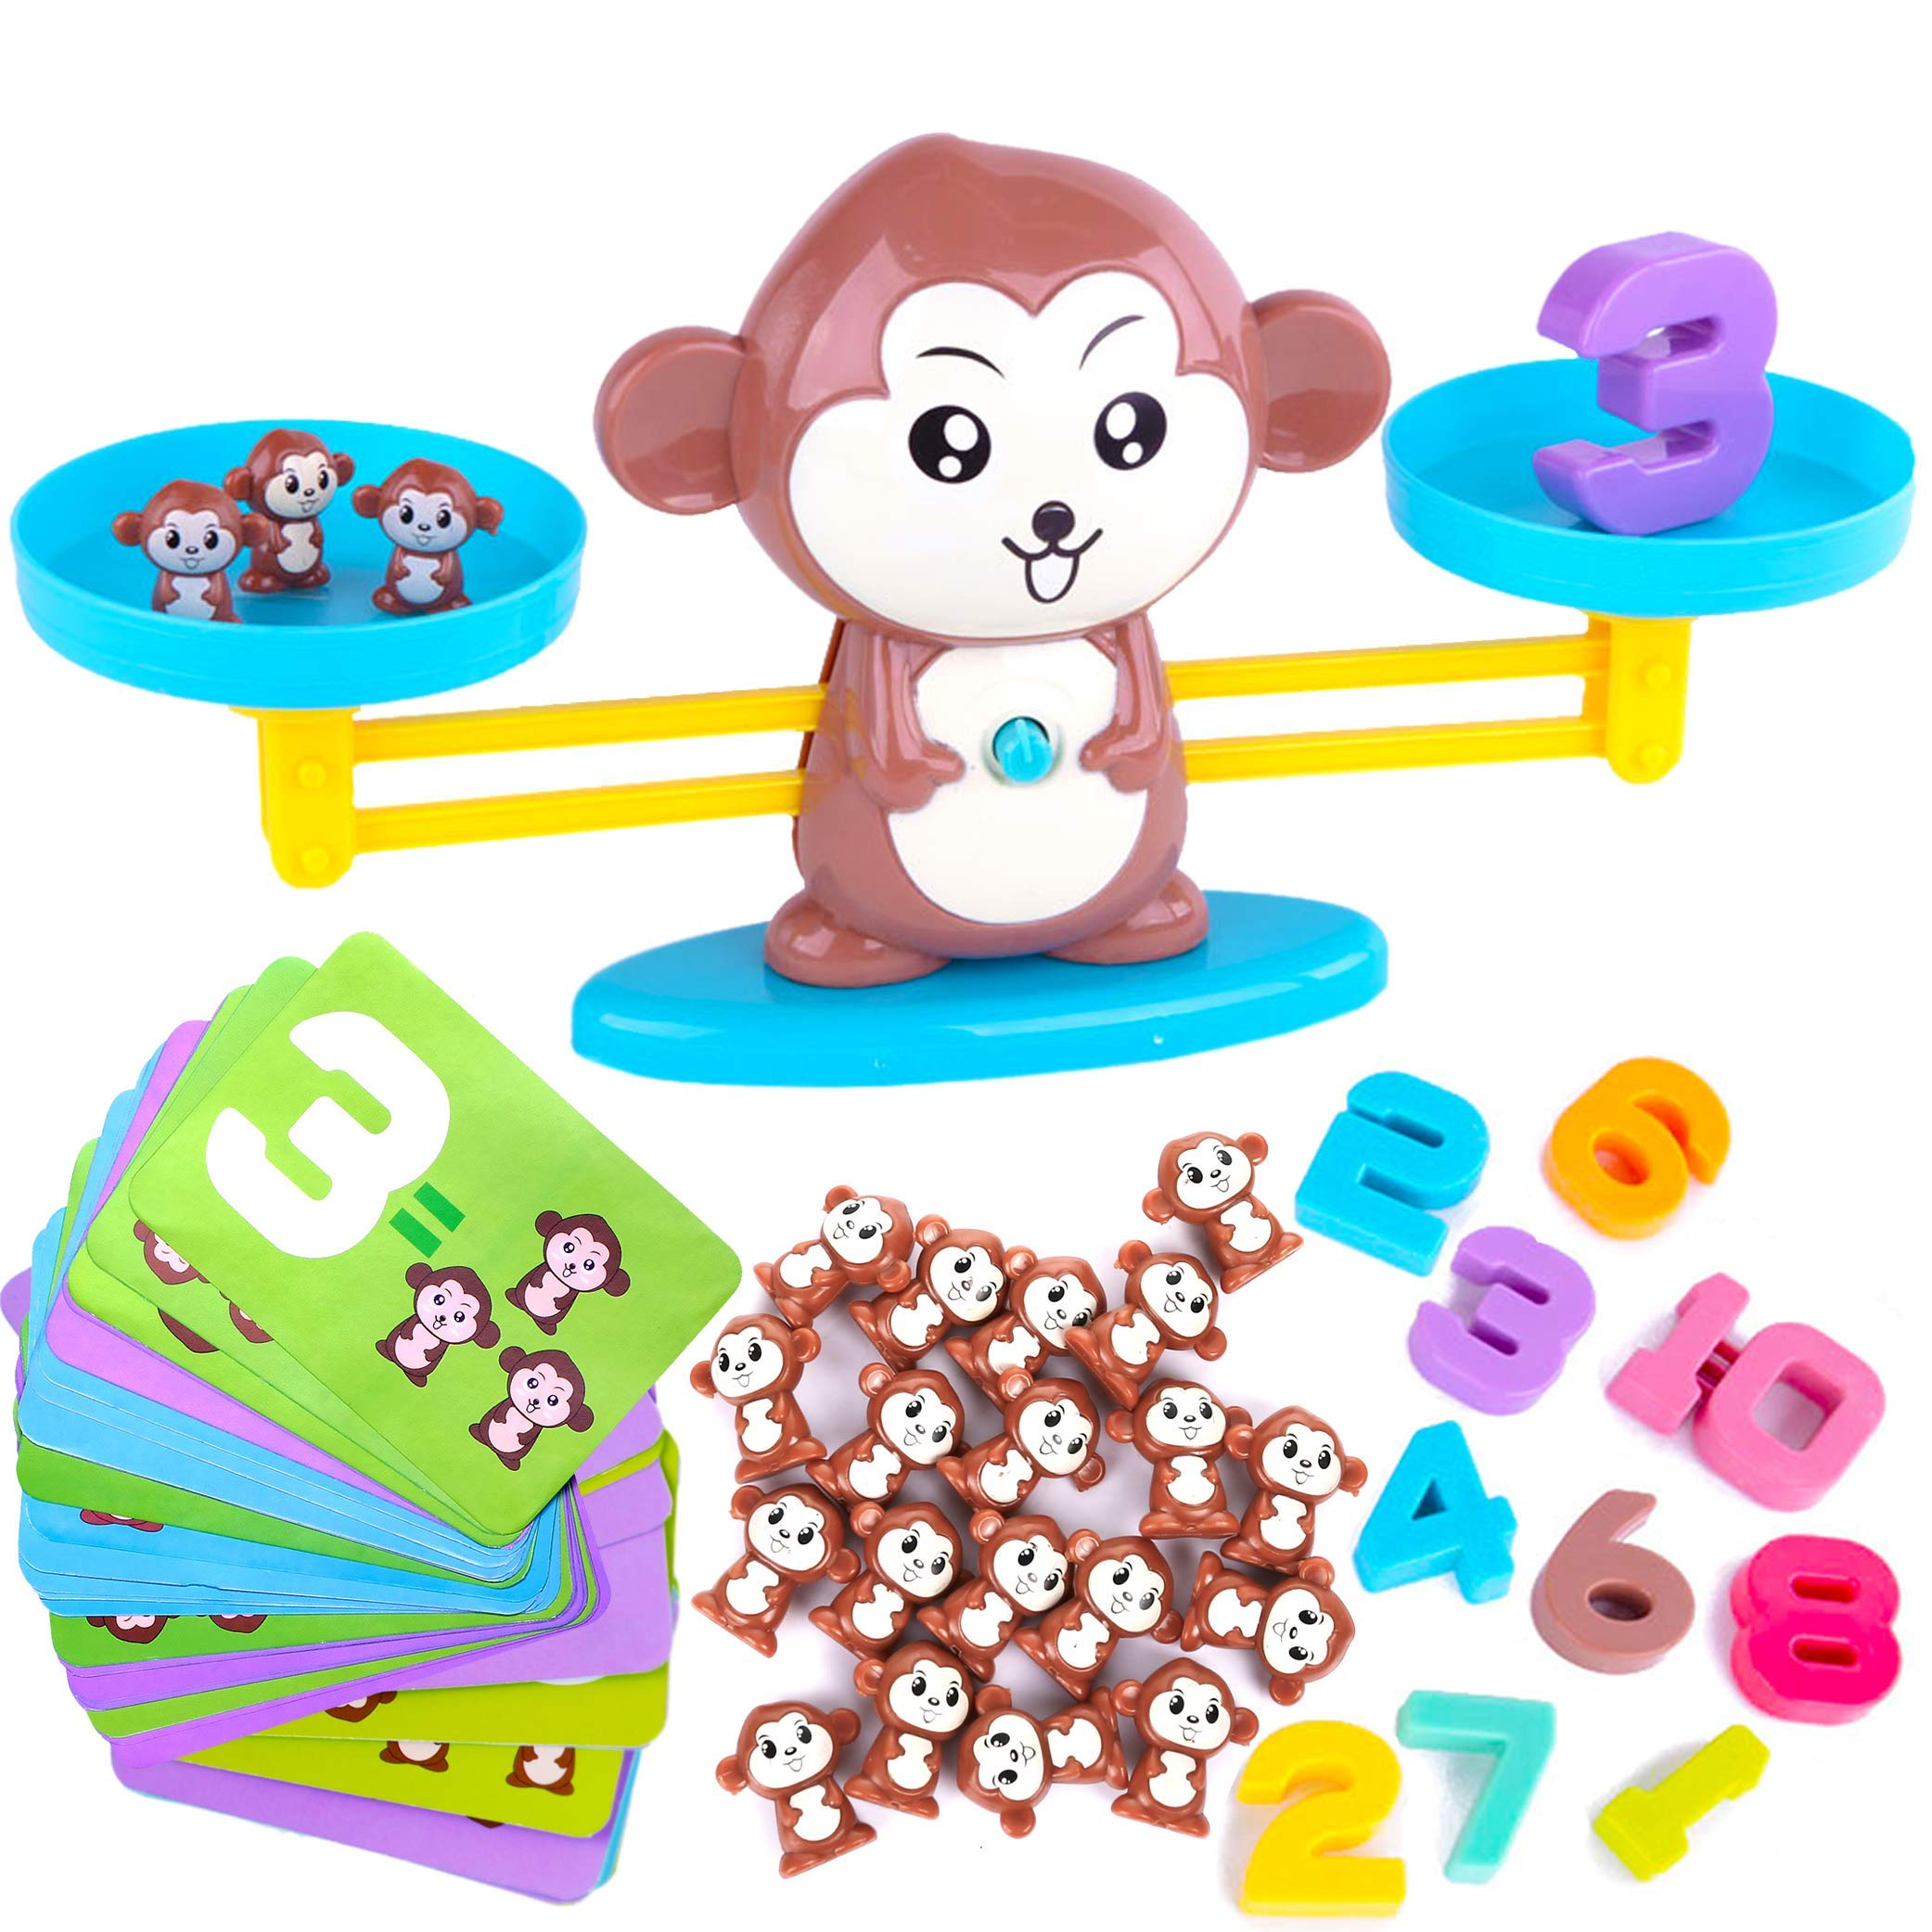 CoolToys Monkey Balance Cool Math Game for Girls & Boys   Fun, Educational Children's Gift & Kids Toy STEM Learning Ages 3+ (65-Piece Set) by CoolToys